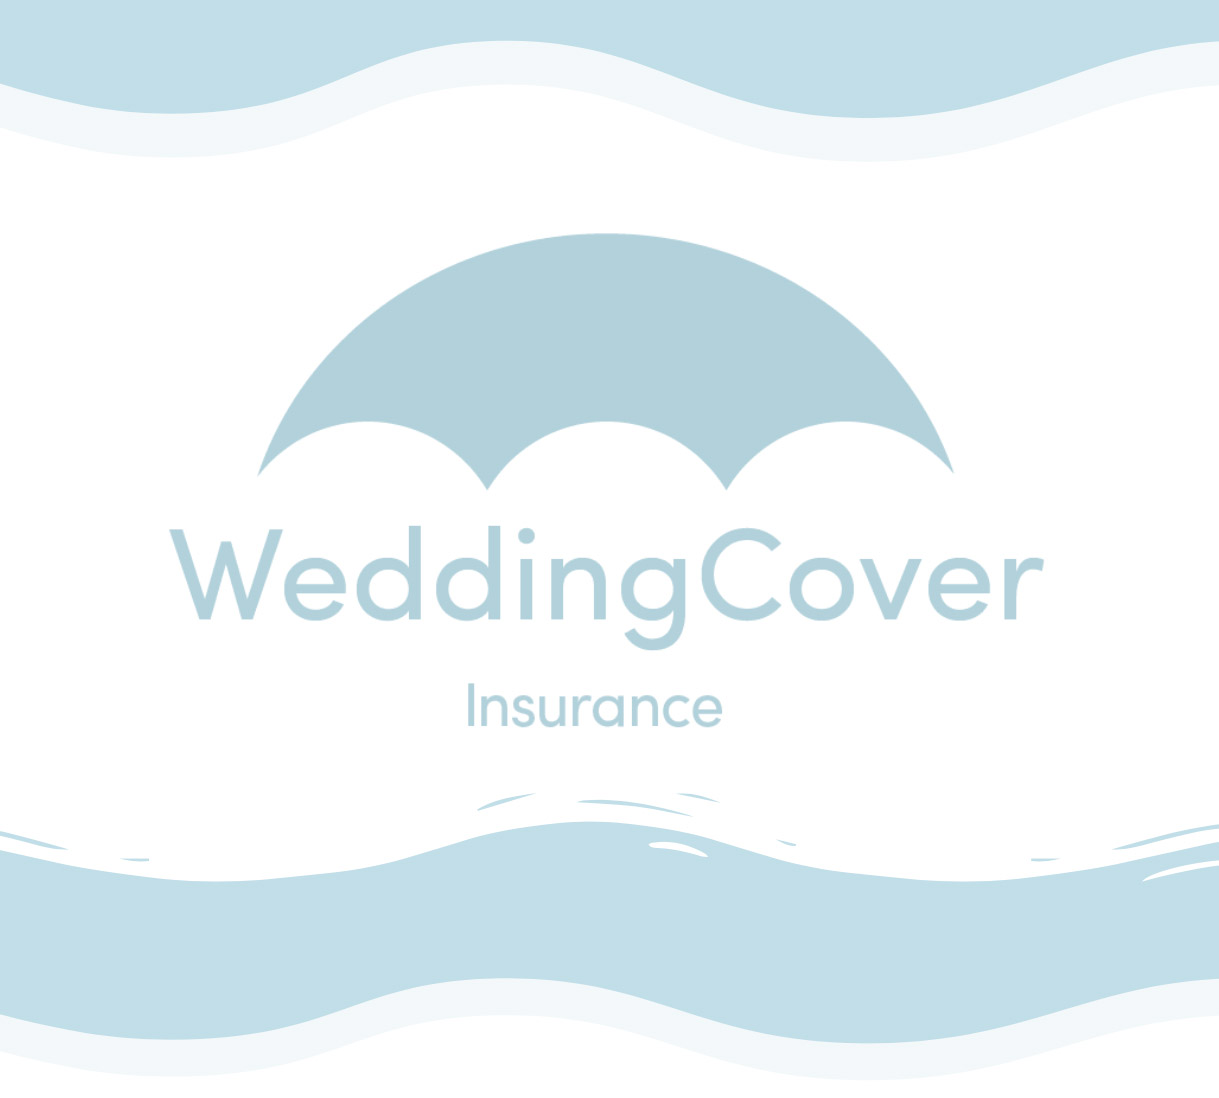 Wedding Cover product reacts to the current Covid-19 pandemic